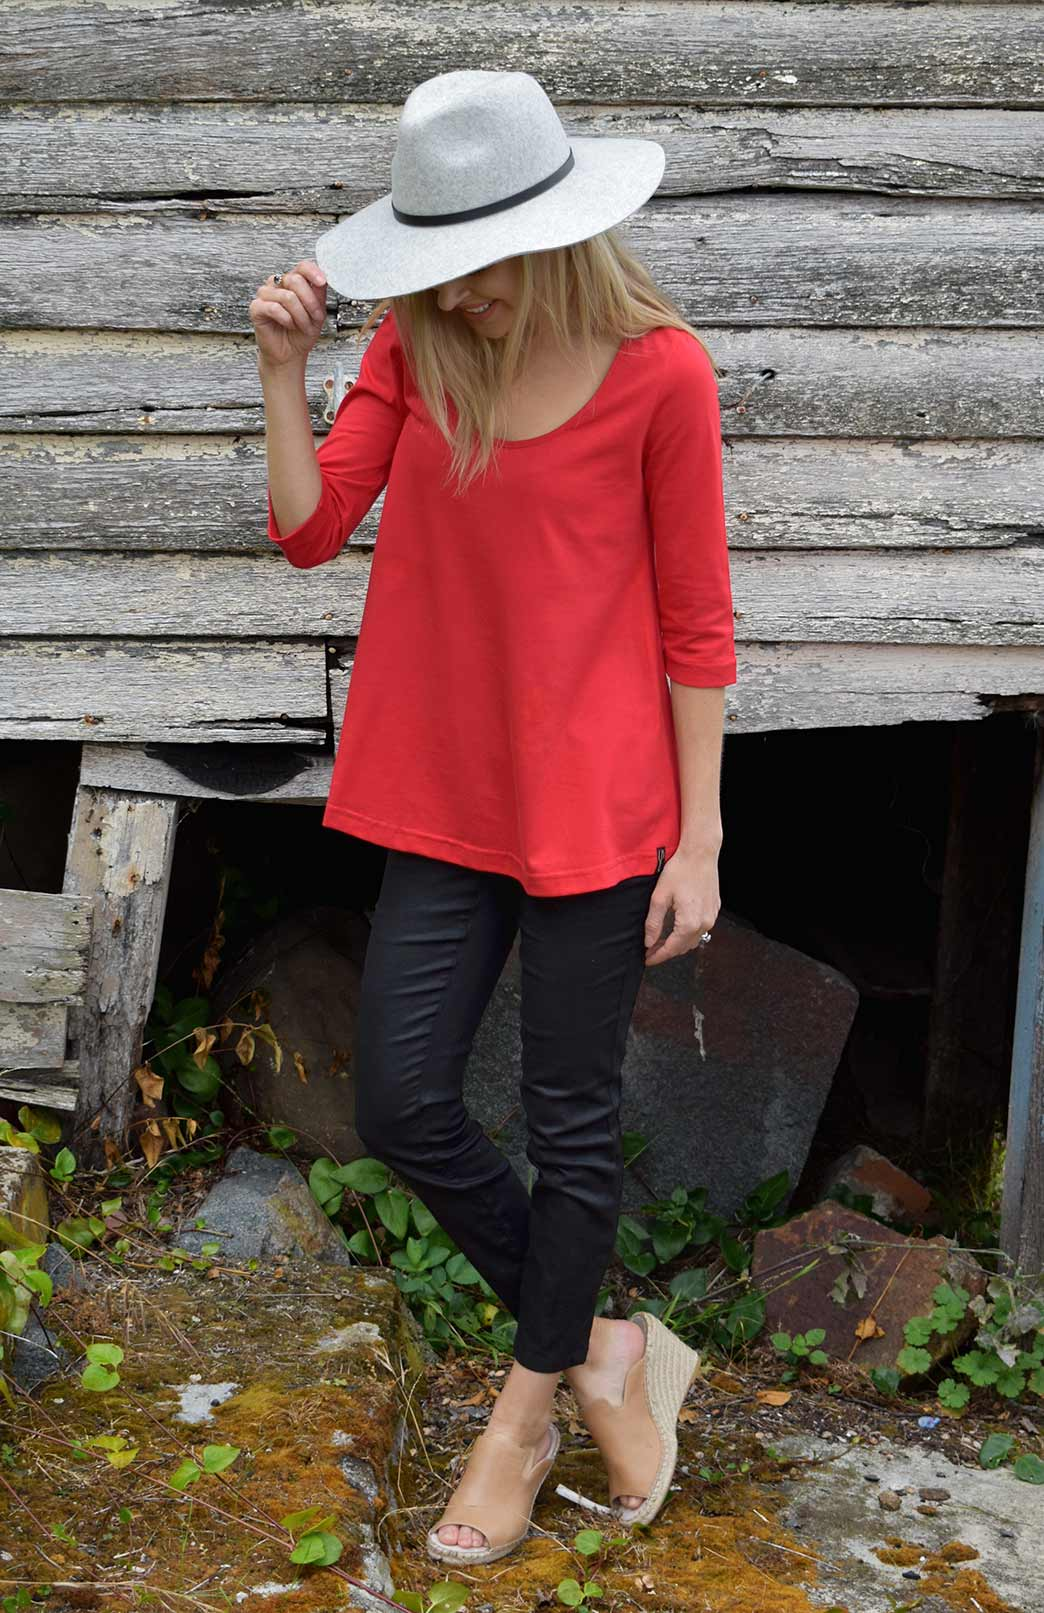 Rennie Top - Women's Organic Cotton Vermilion Red 3/4 Sleeved Swing Top with Scooped Neckline - Smitten Merino Tasmania Australia